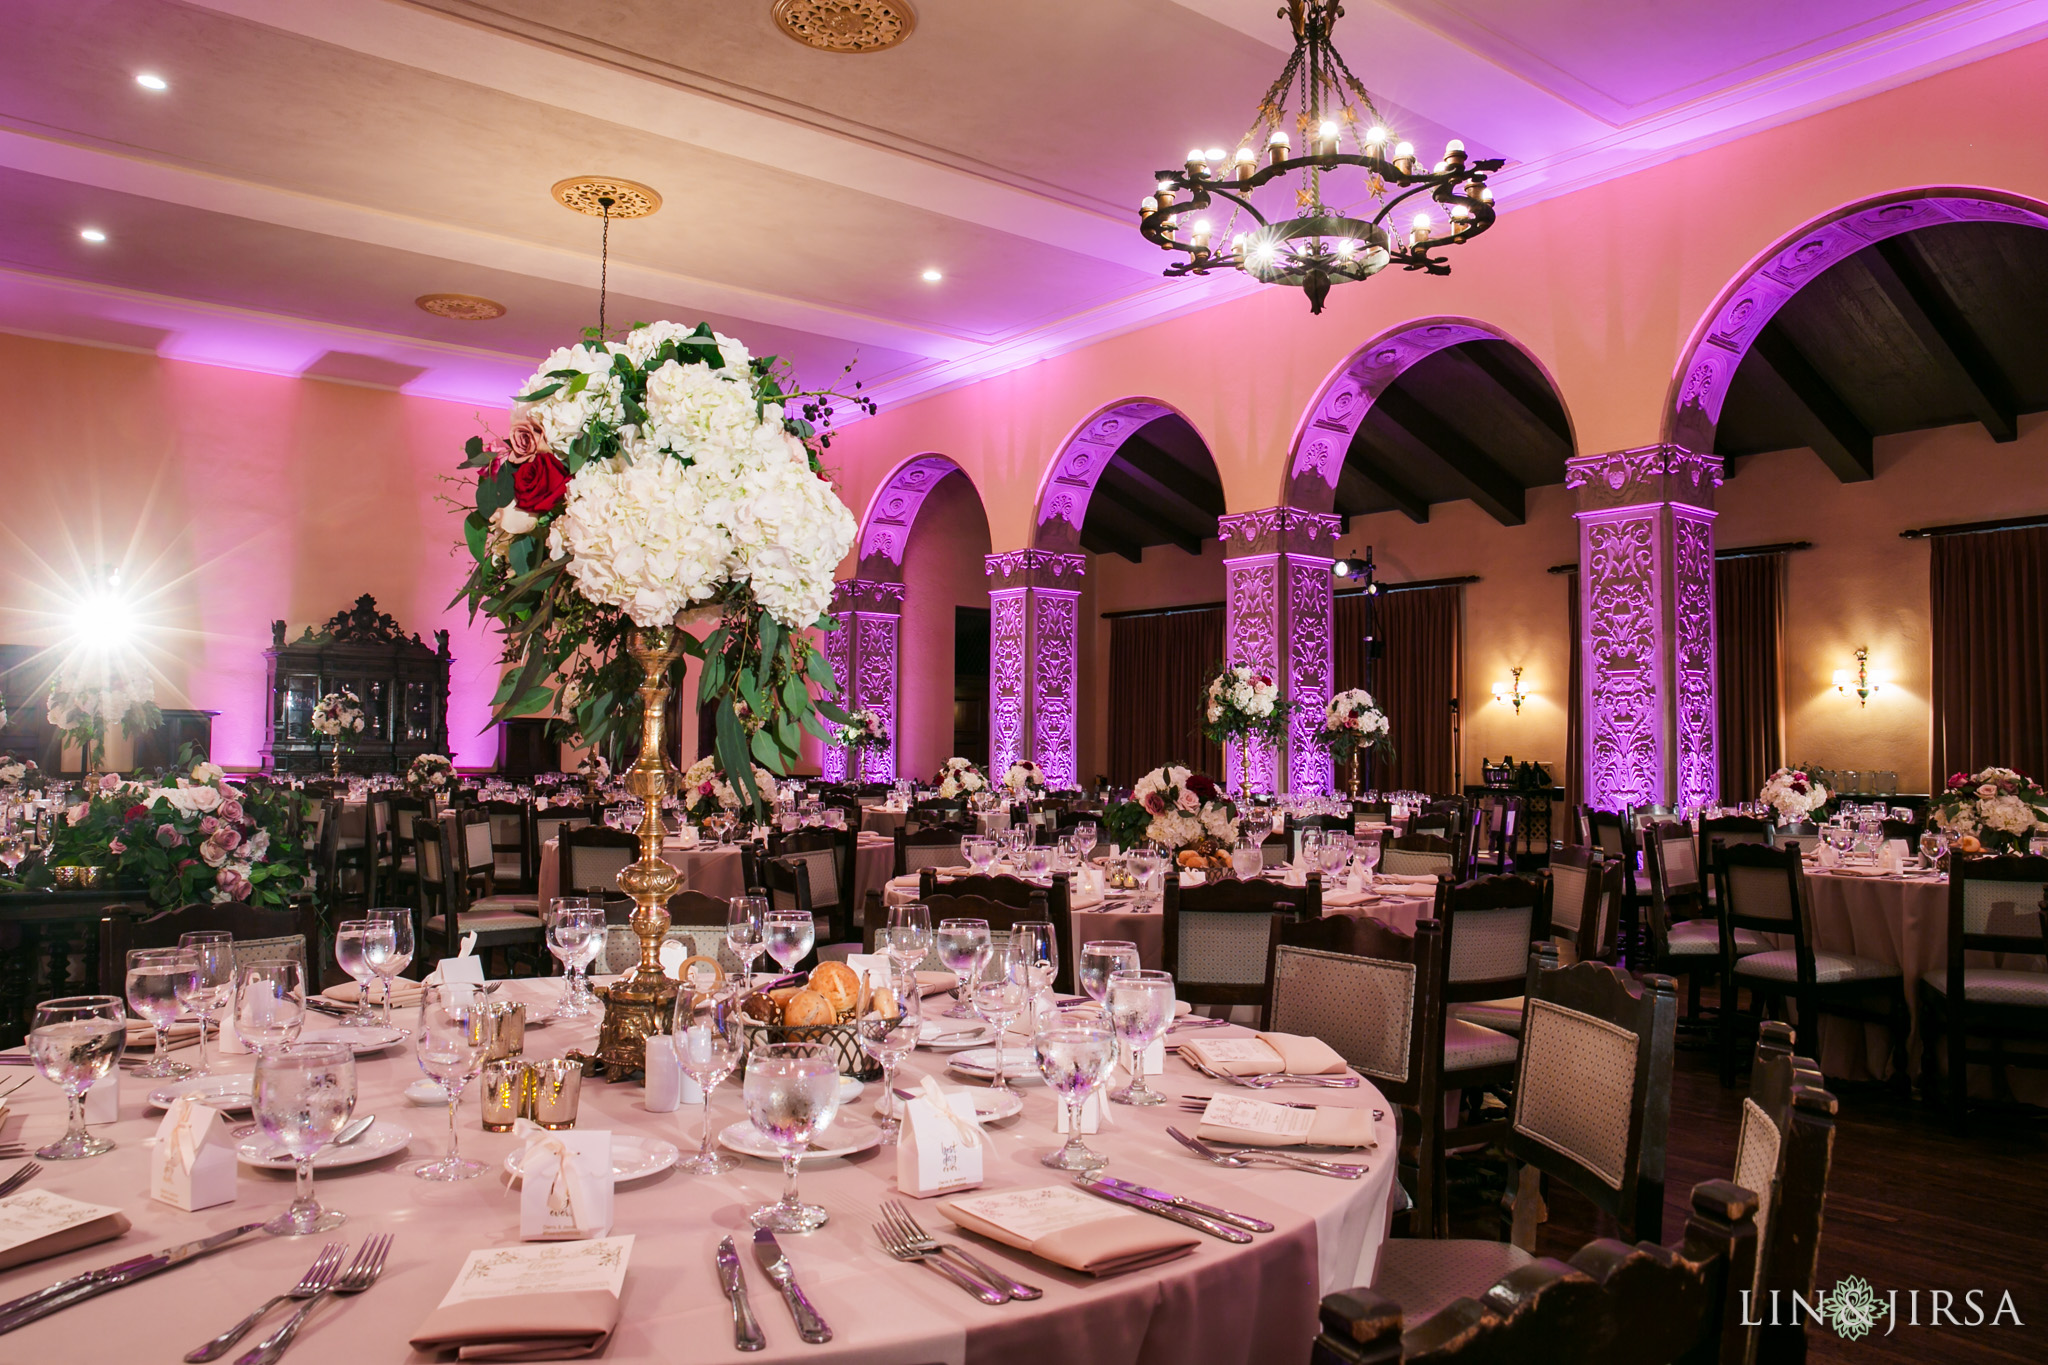 42 The Ebell Los Angeles Multicultural Wedding Photography